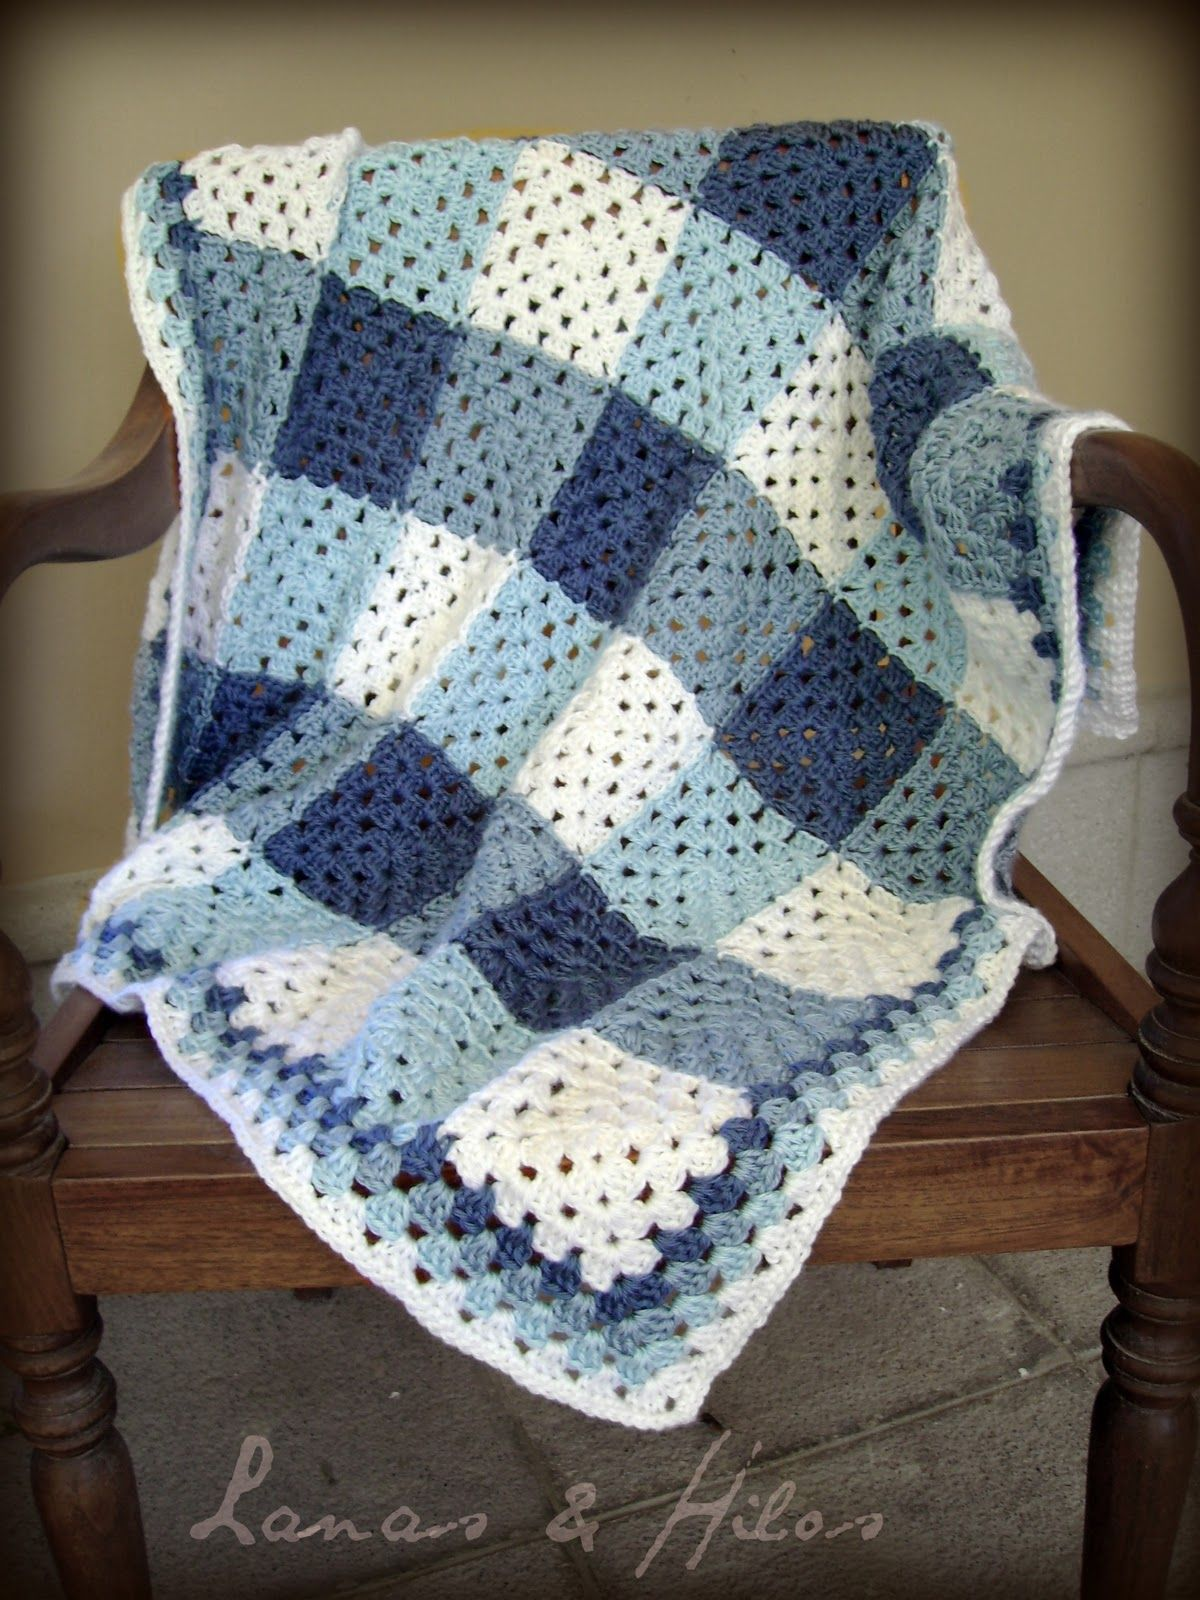 Plaid granny blanket with granny square pattern in English, Spanish, and stitch symbols.  Includes 6 suggested plaid color options, join as you go tutorial, and border suggestions.  By Lanas & Hilos by Ana BC